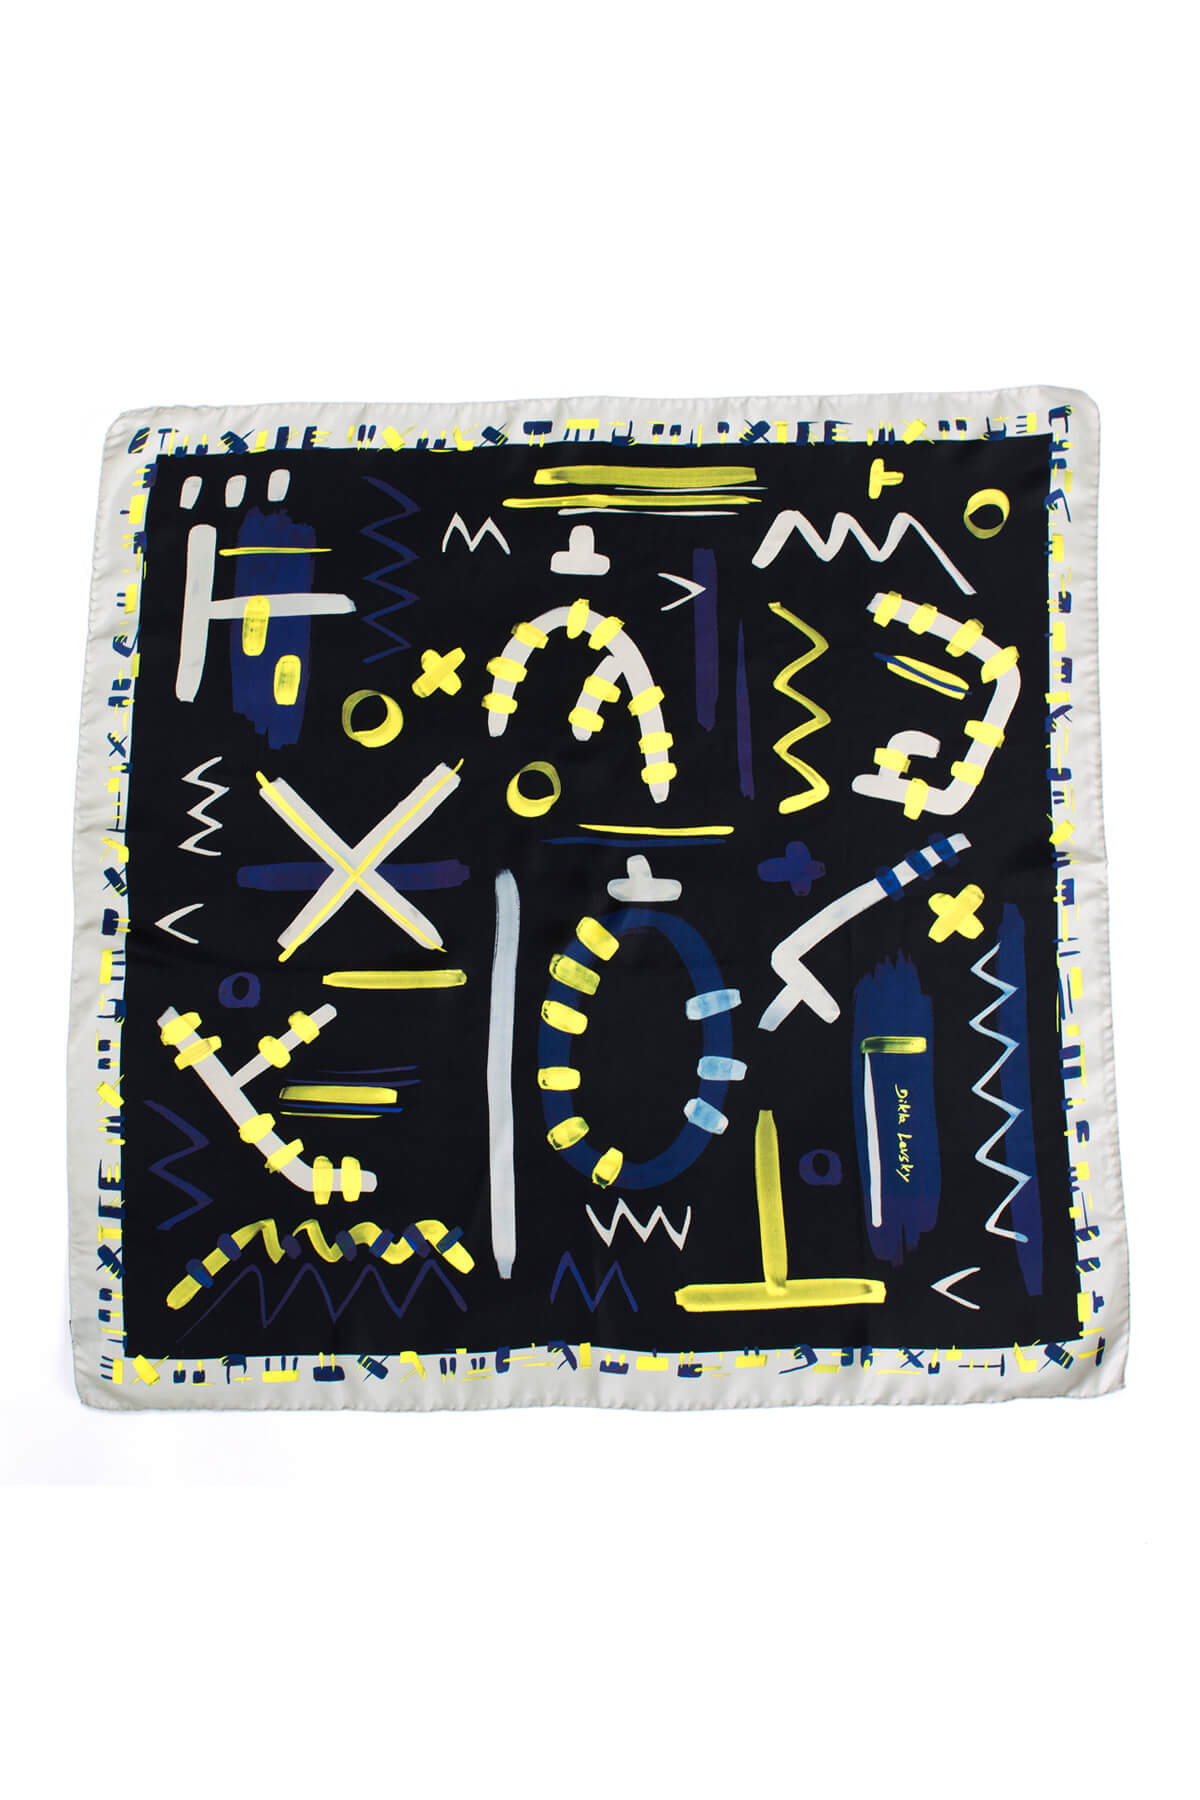 printed scarf, square black and neon yellow silk scarf by dikla levsky